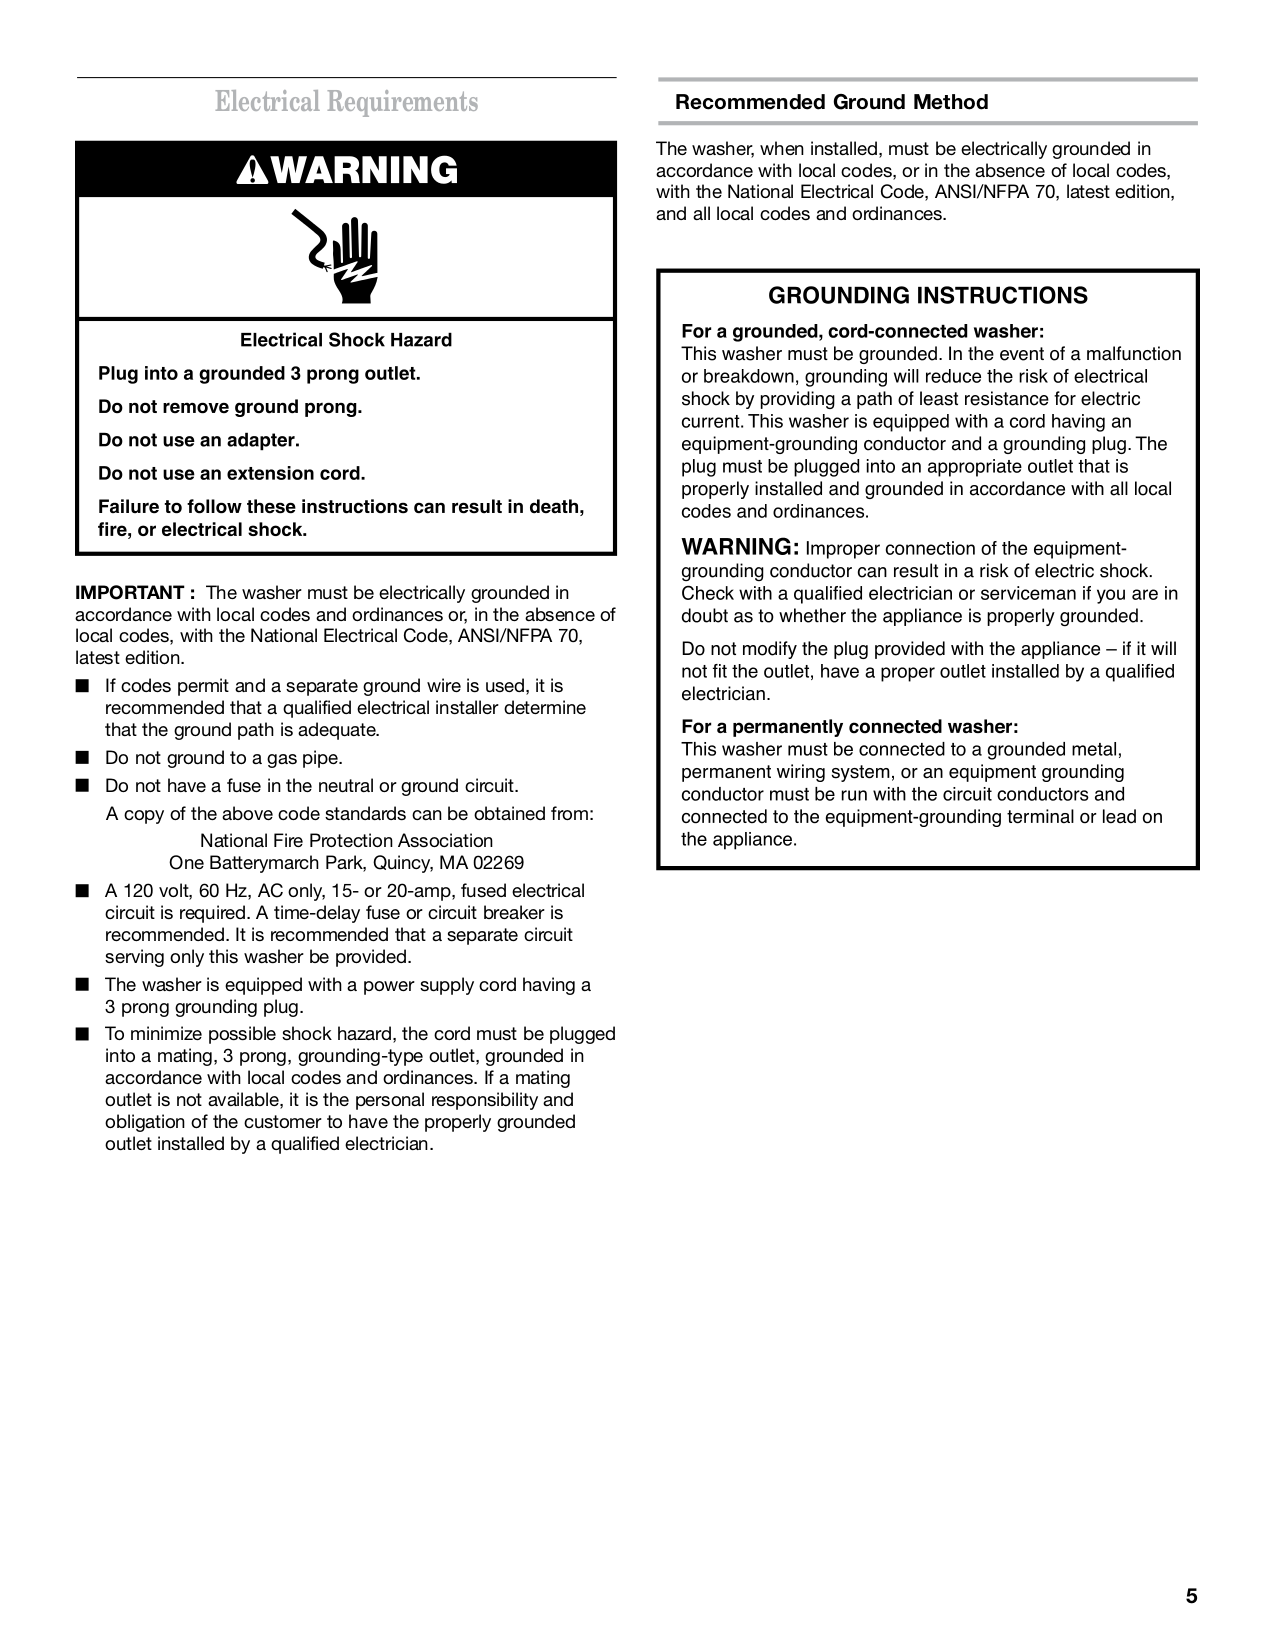 PDF manual for Maytag Washer MAT14PDAW